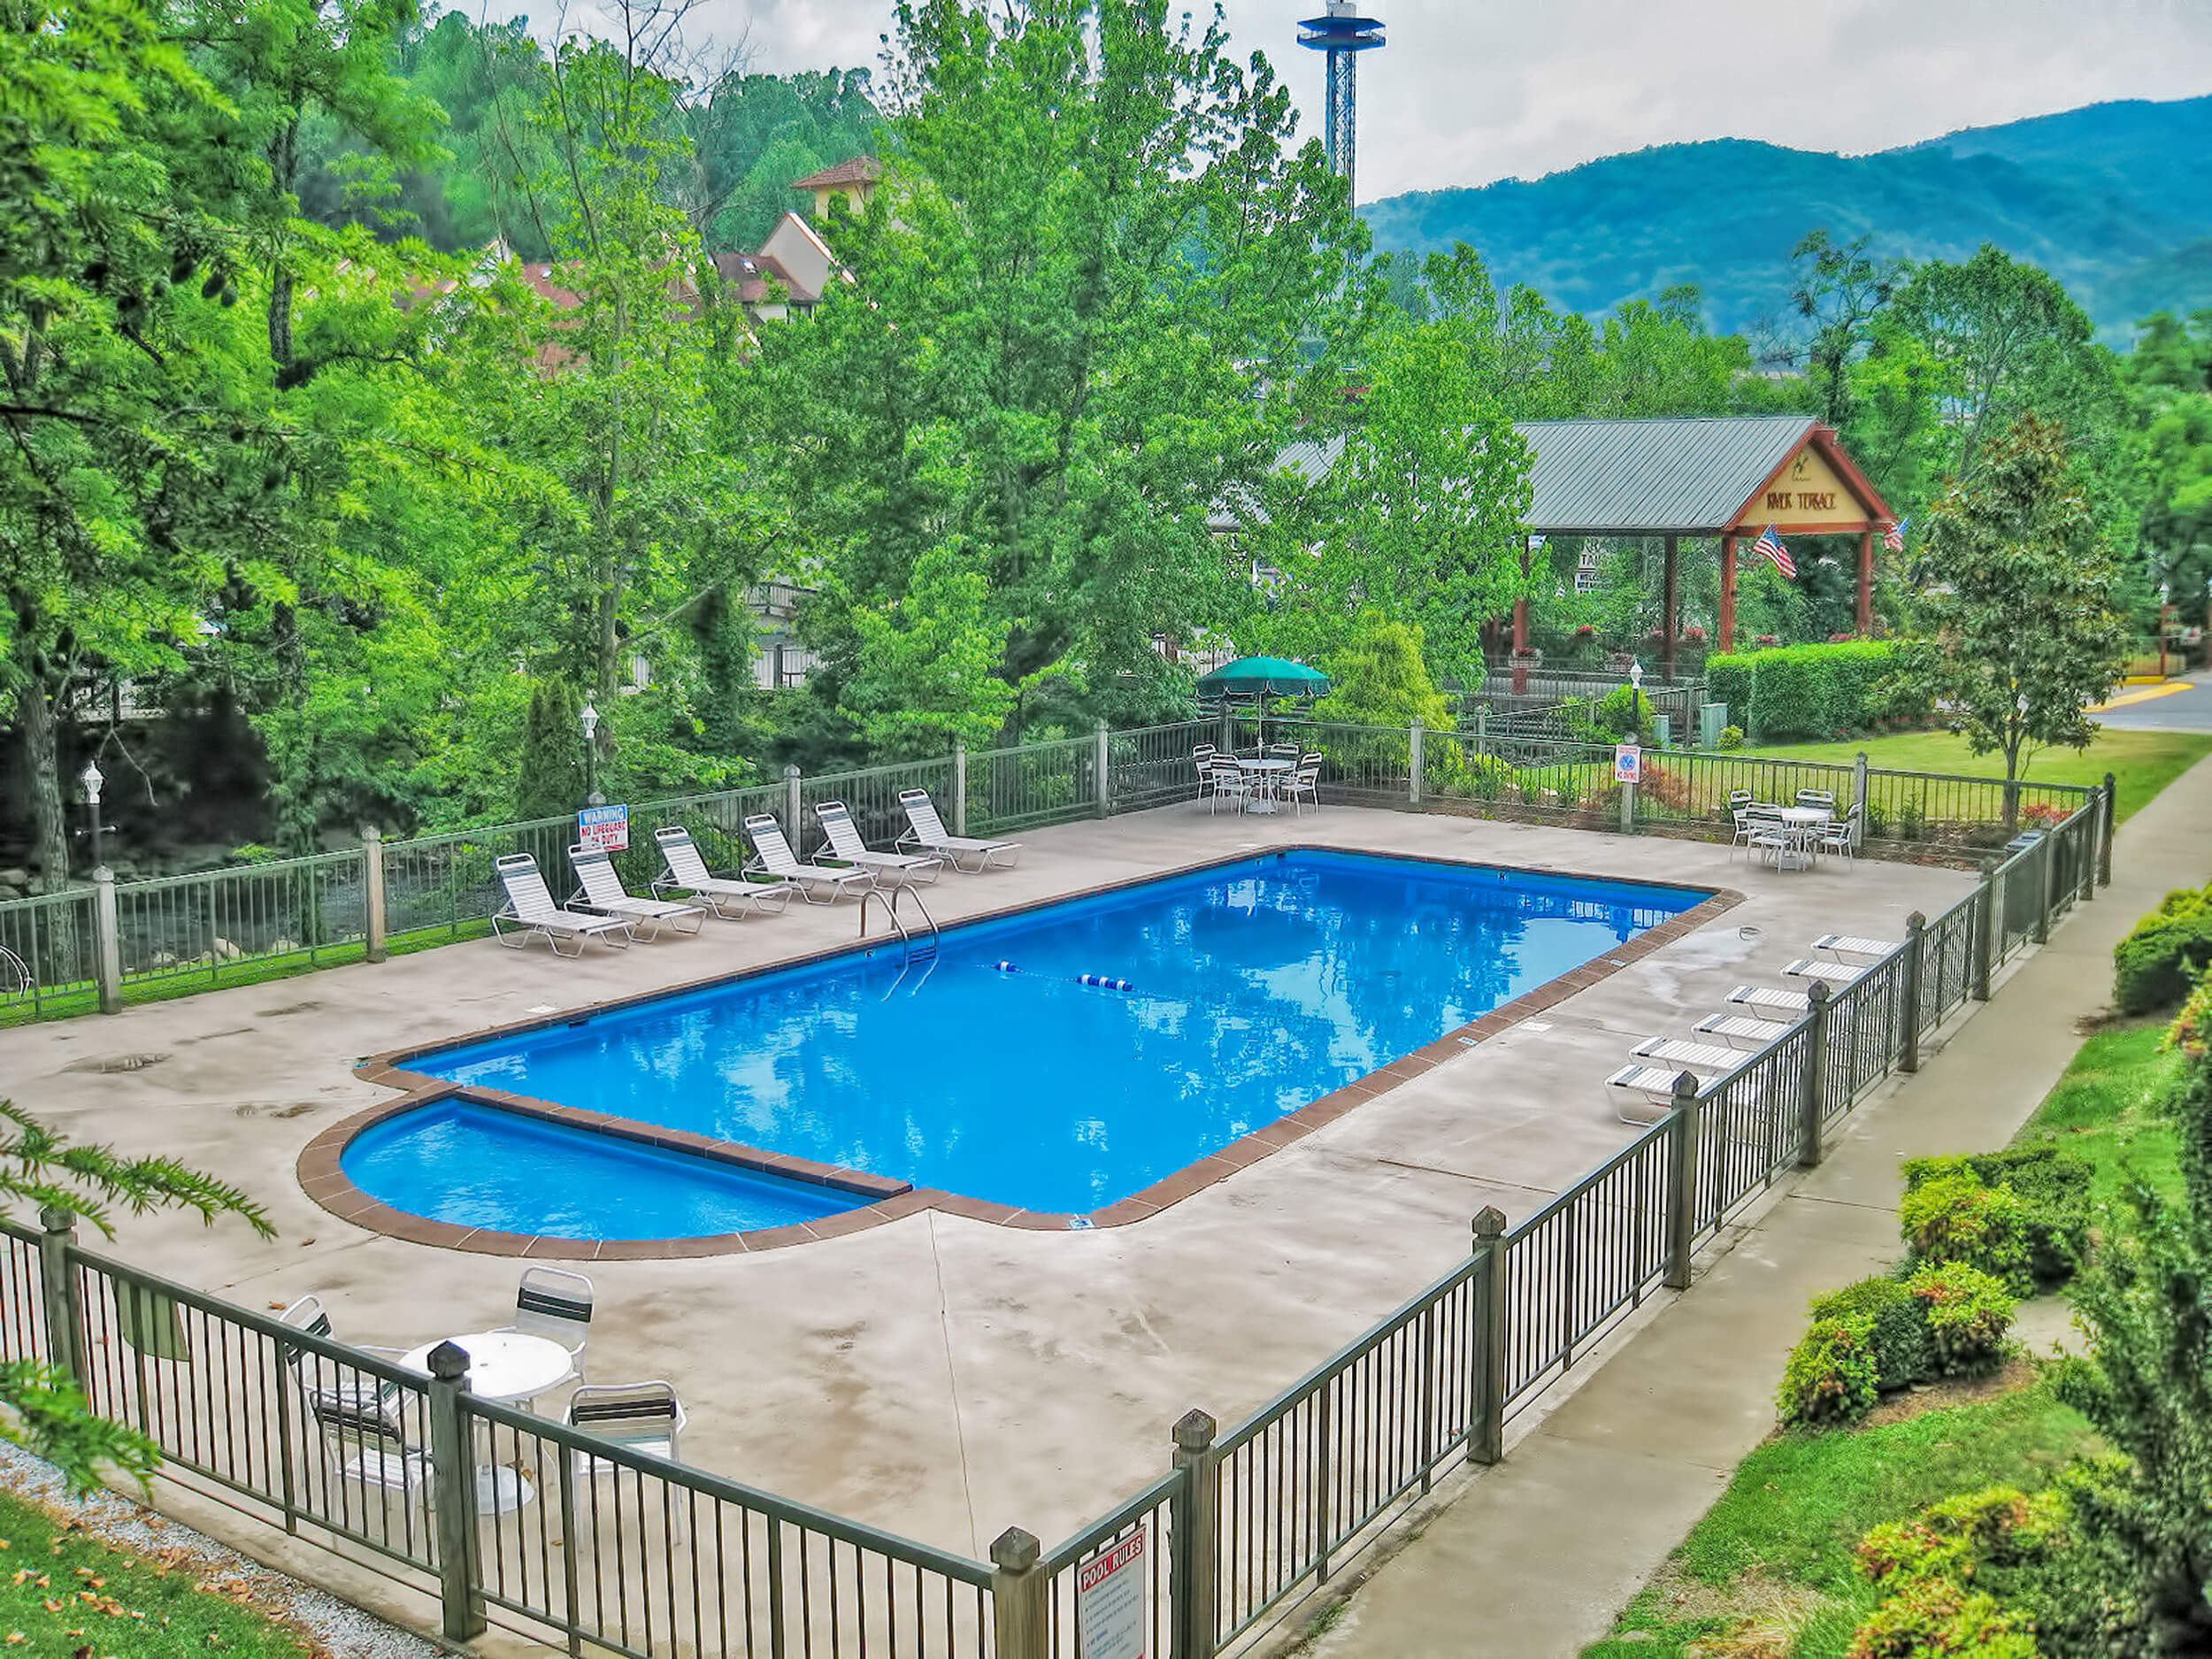 Heated outdoor pool with lounge chairs | River Terrace Resort & Convention Center